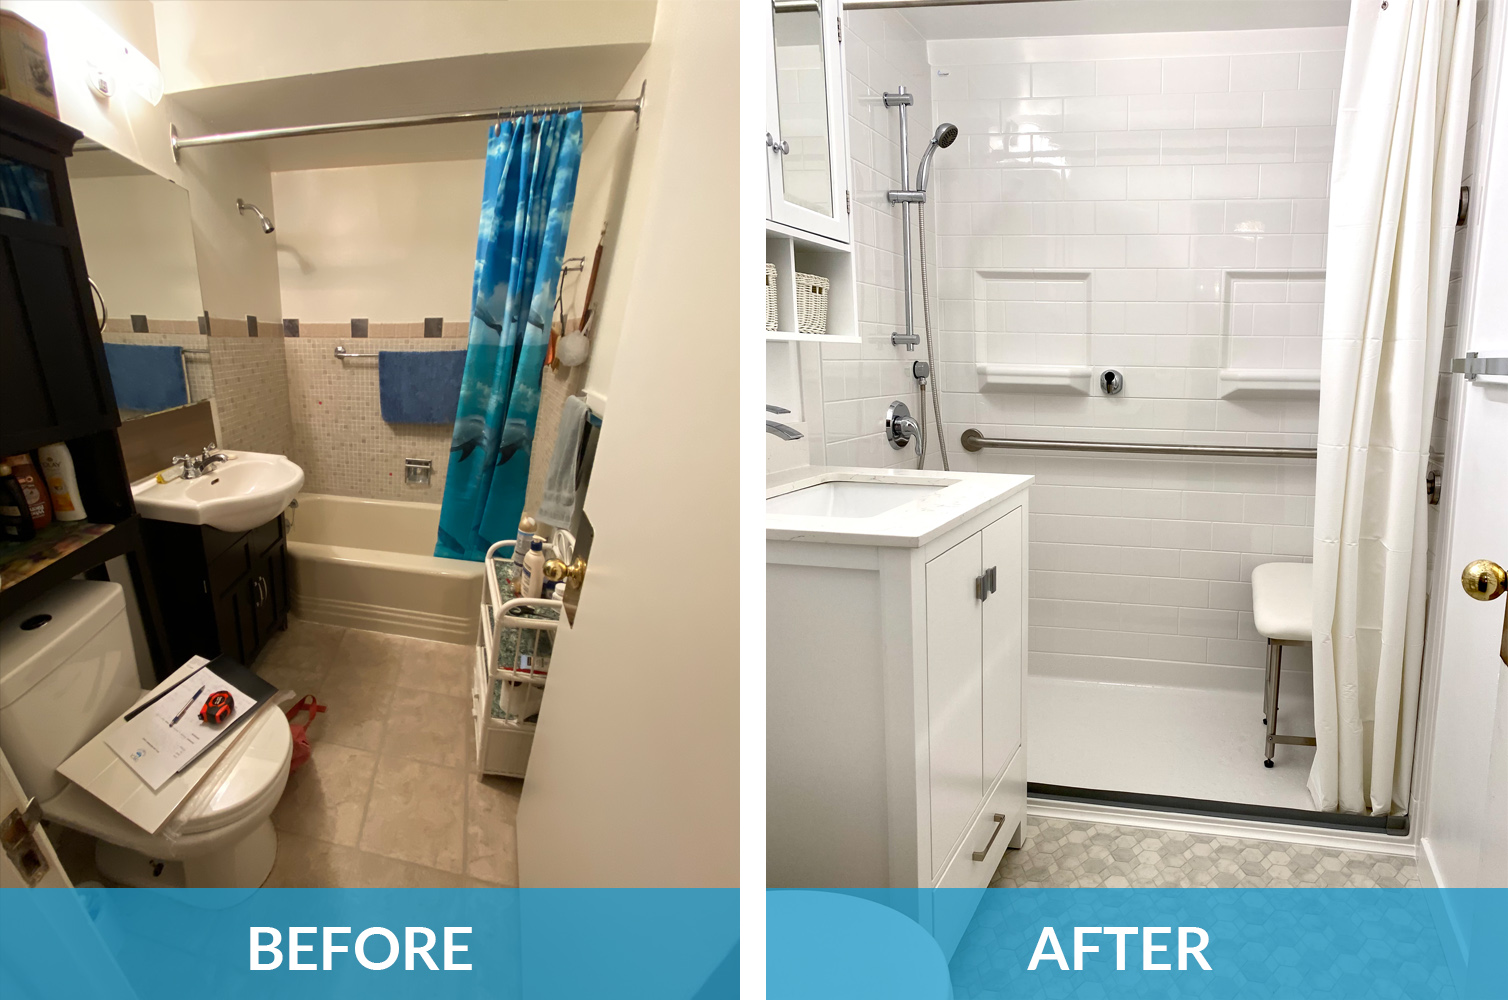 before and after accessible bathroom transformation